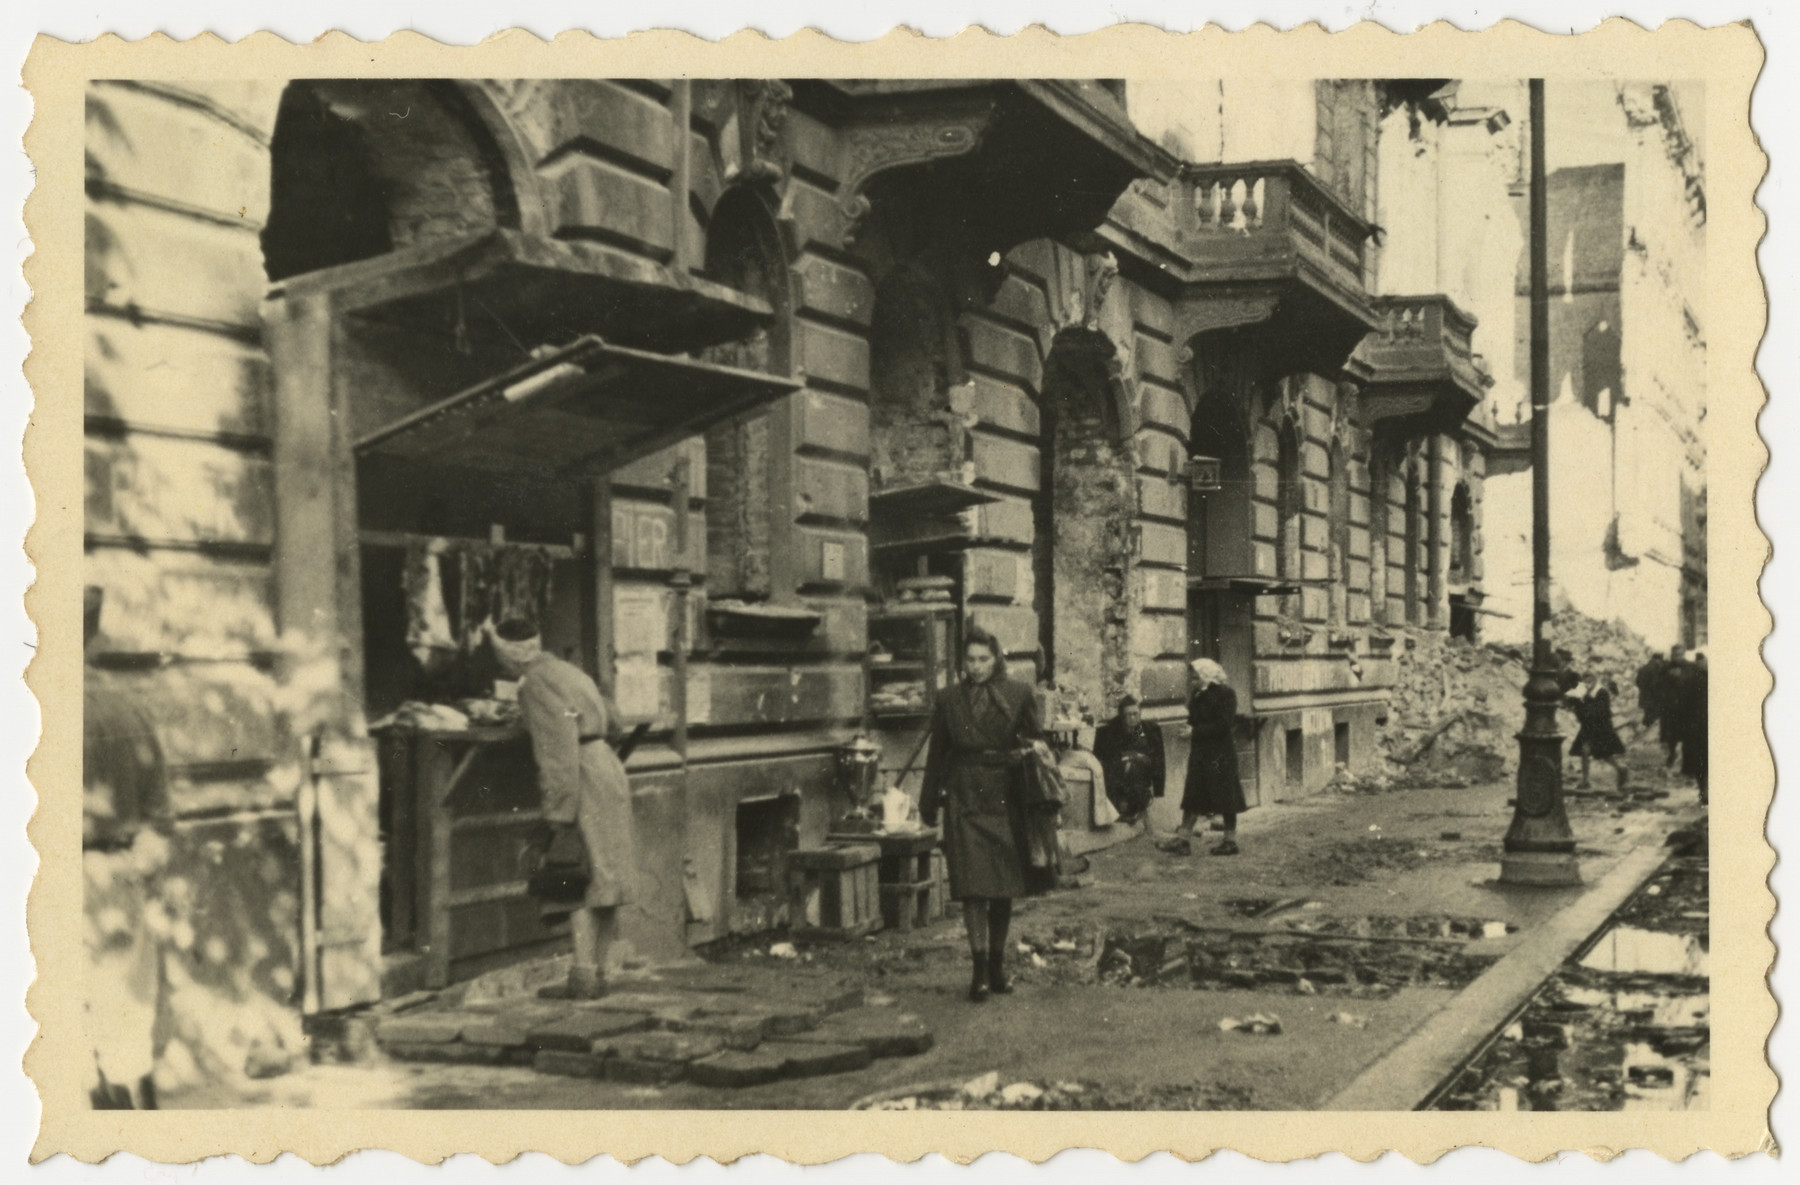 A Polish woman walks down a war-damaged the sidewalk while another looks at a store display in postwar Warsaw.